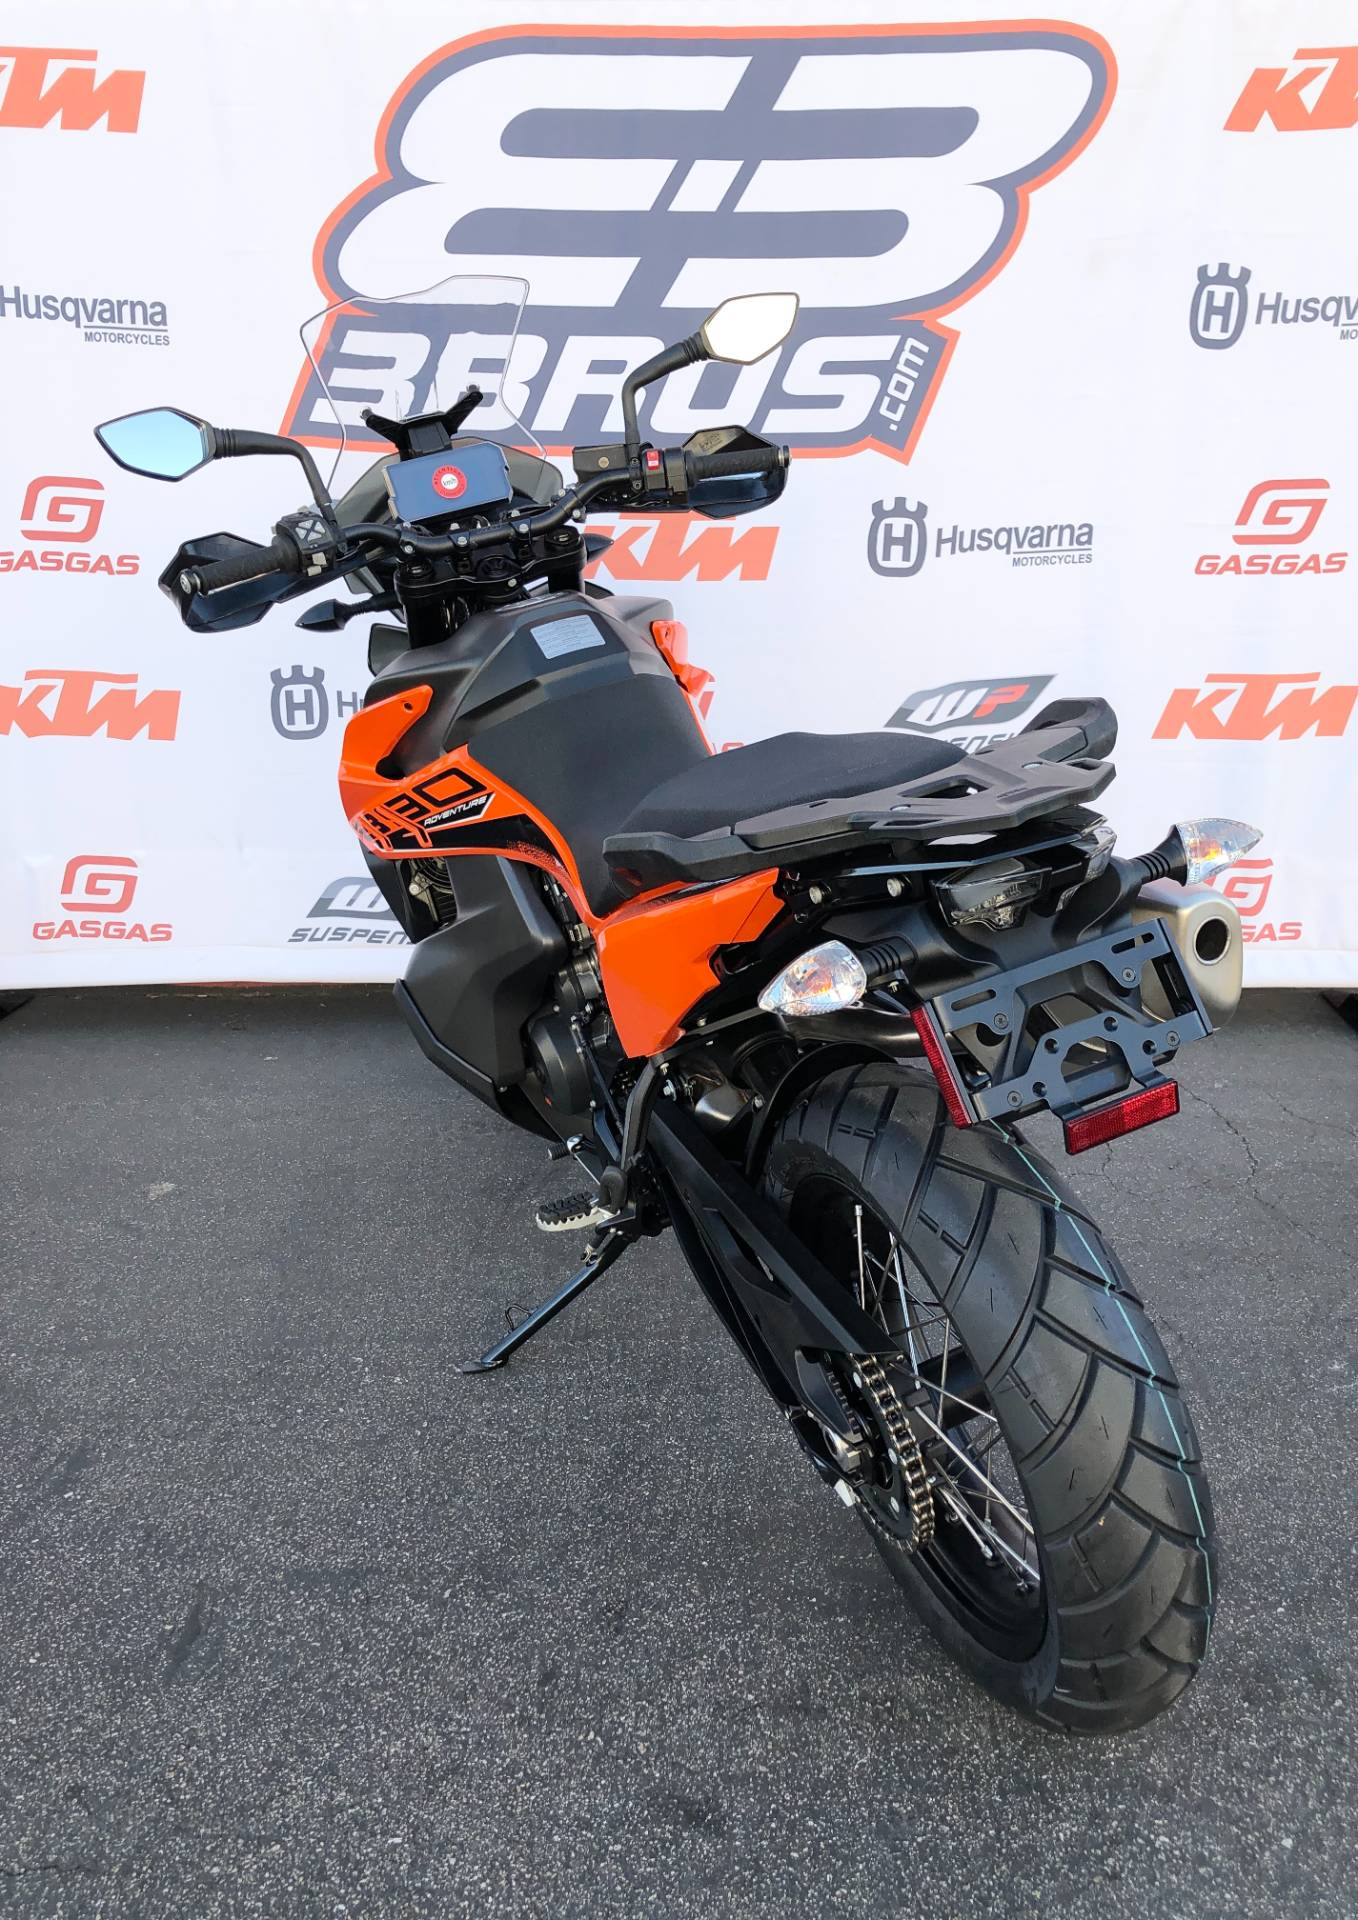 2021 KTM 890 Adventure in Costa Mesa, California - Photo 6